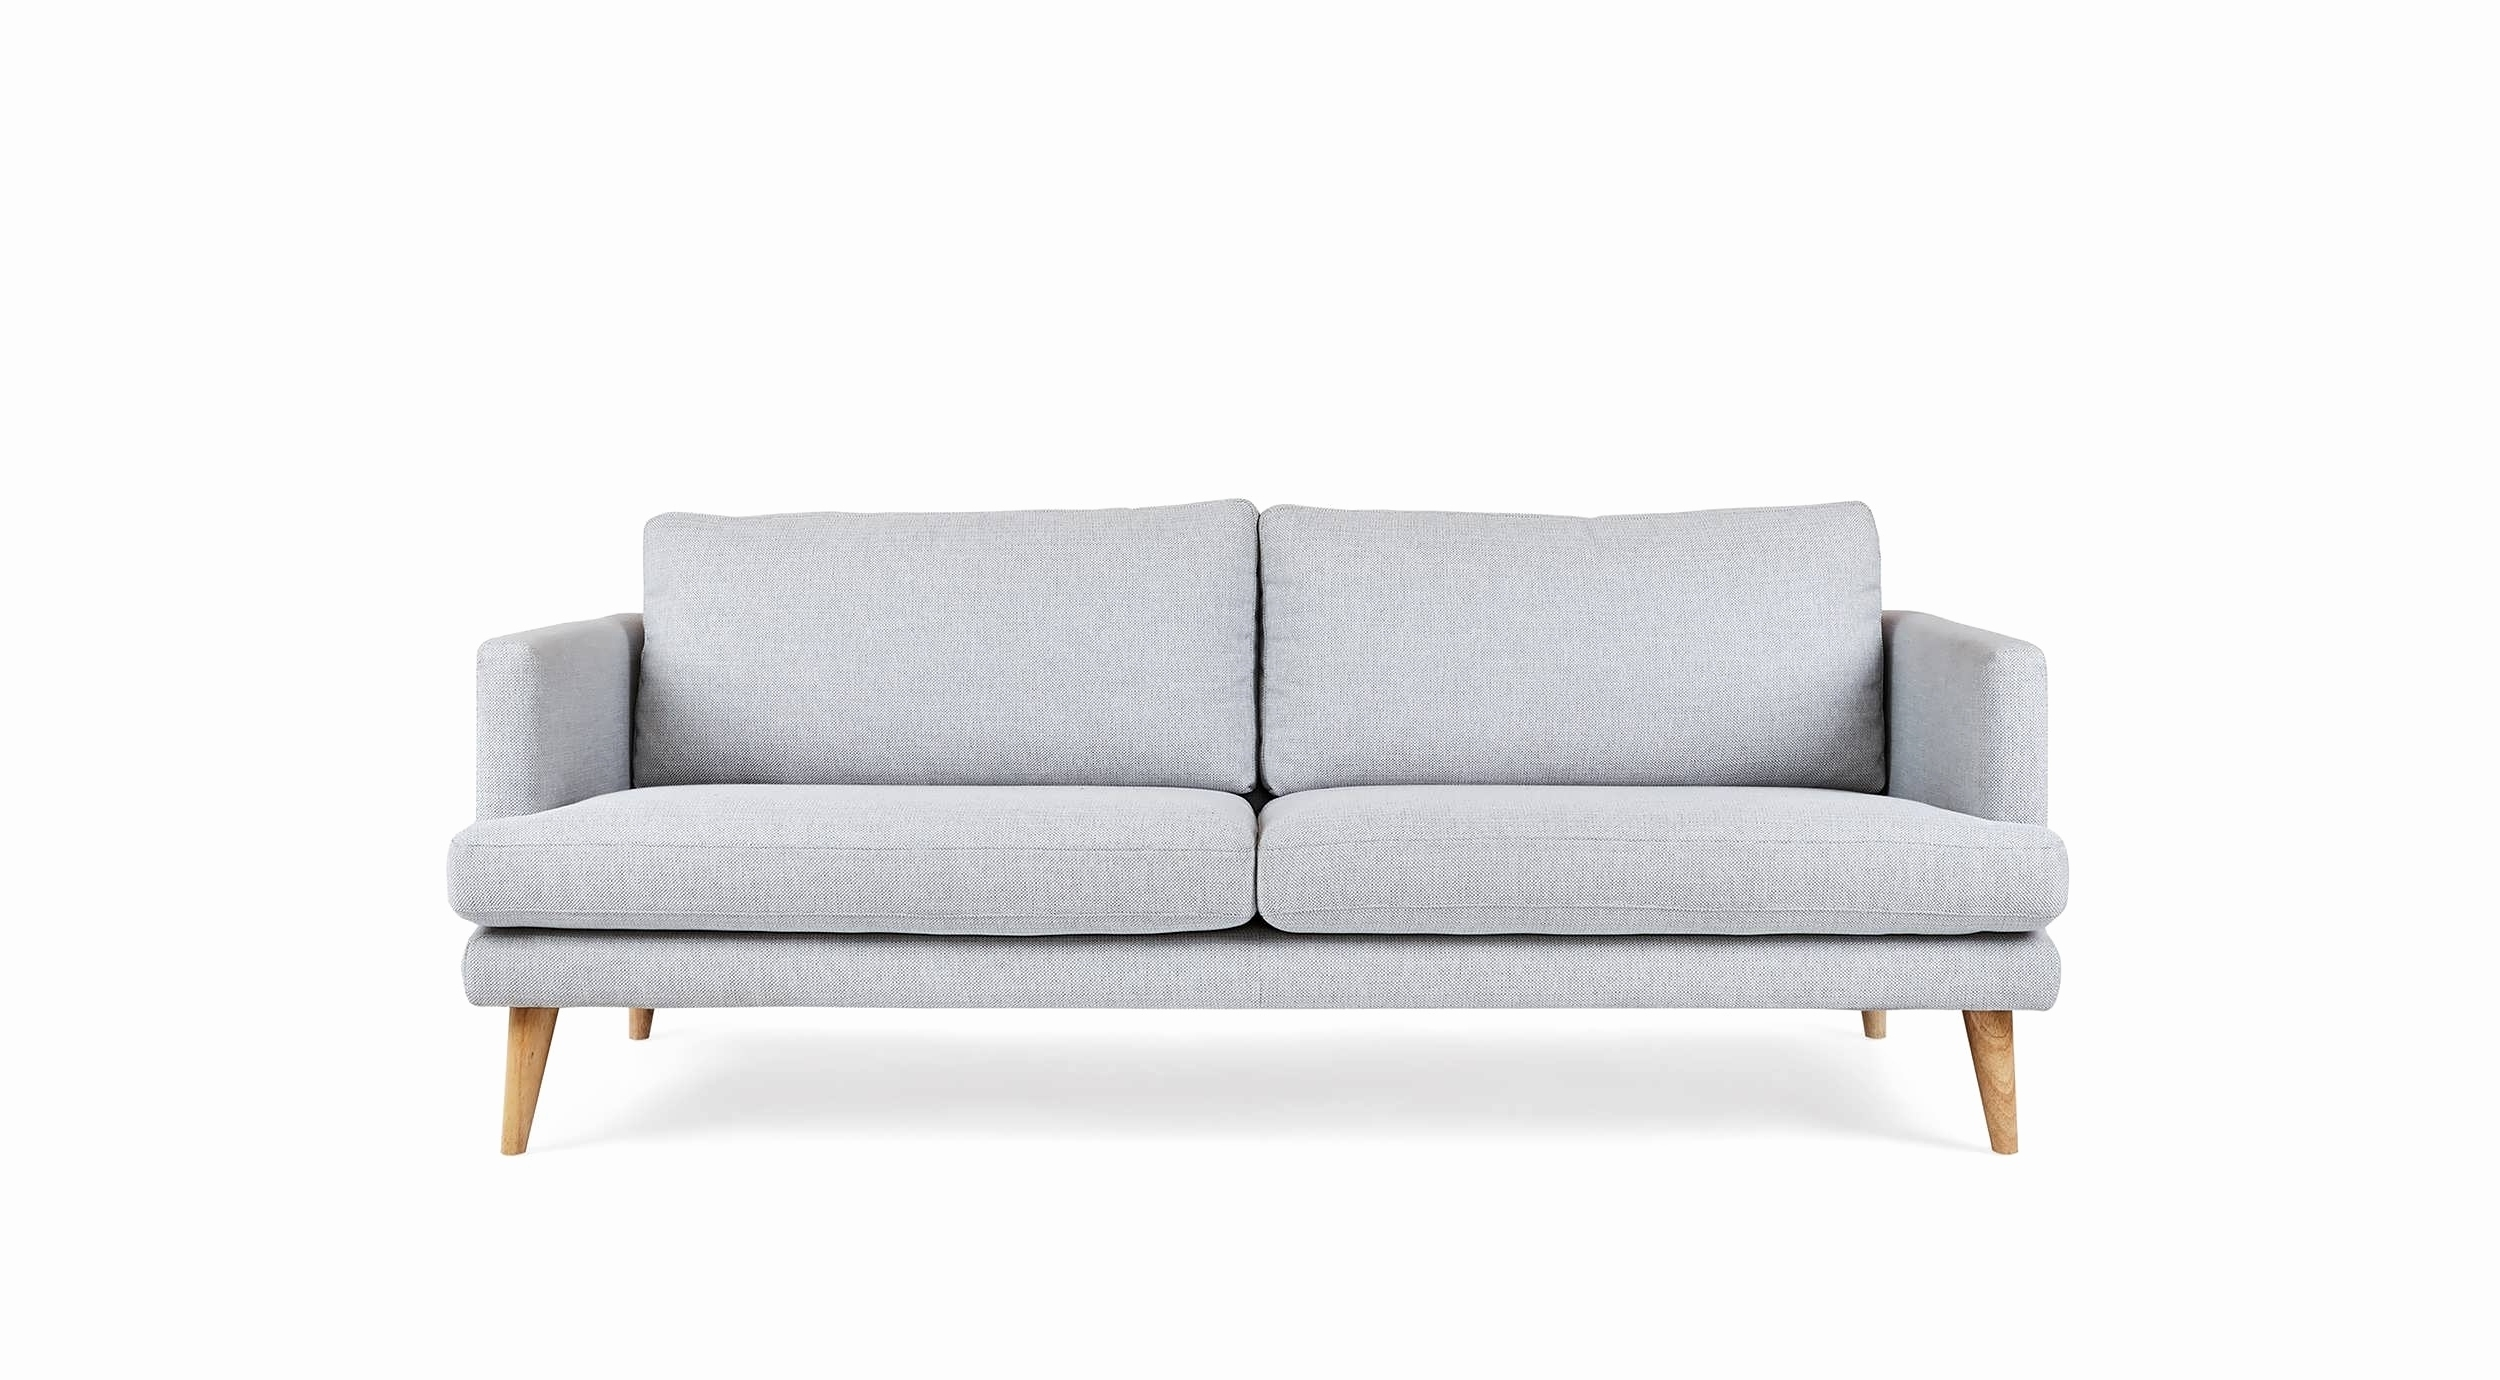 Preferred Luxury Pull Out Double Sofa Bed 2018 – Couches And Sofas Ideas With Cheap Single Sofas (View 5 of 20)